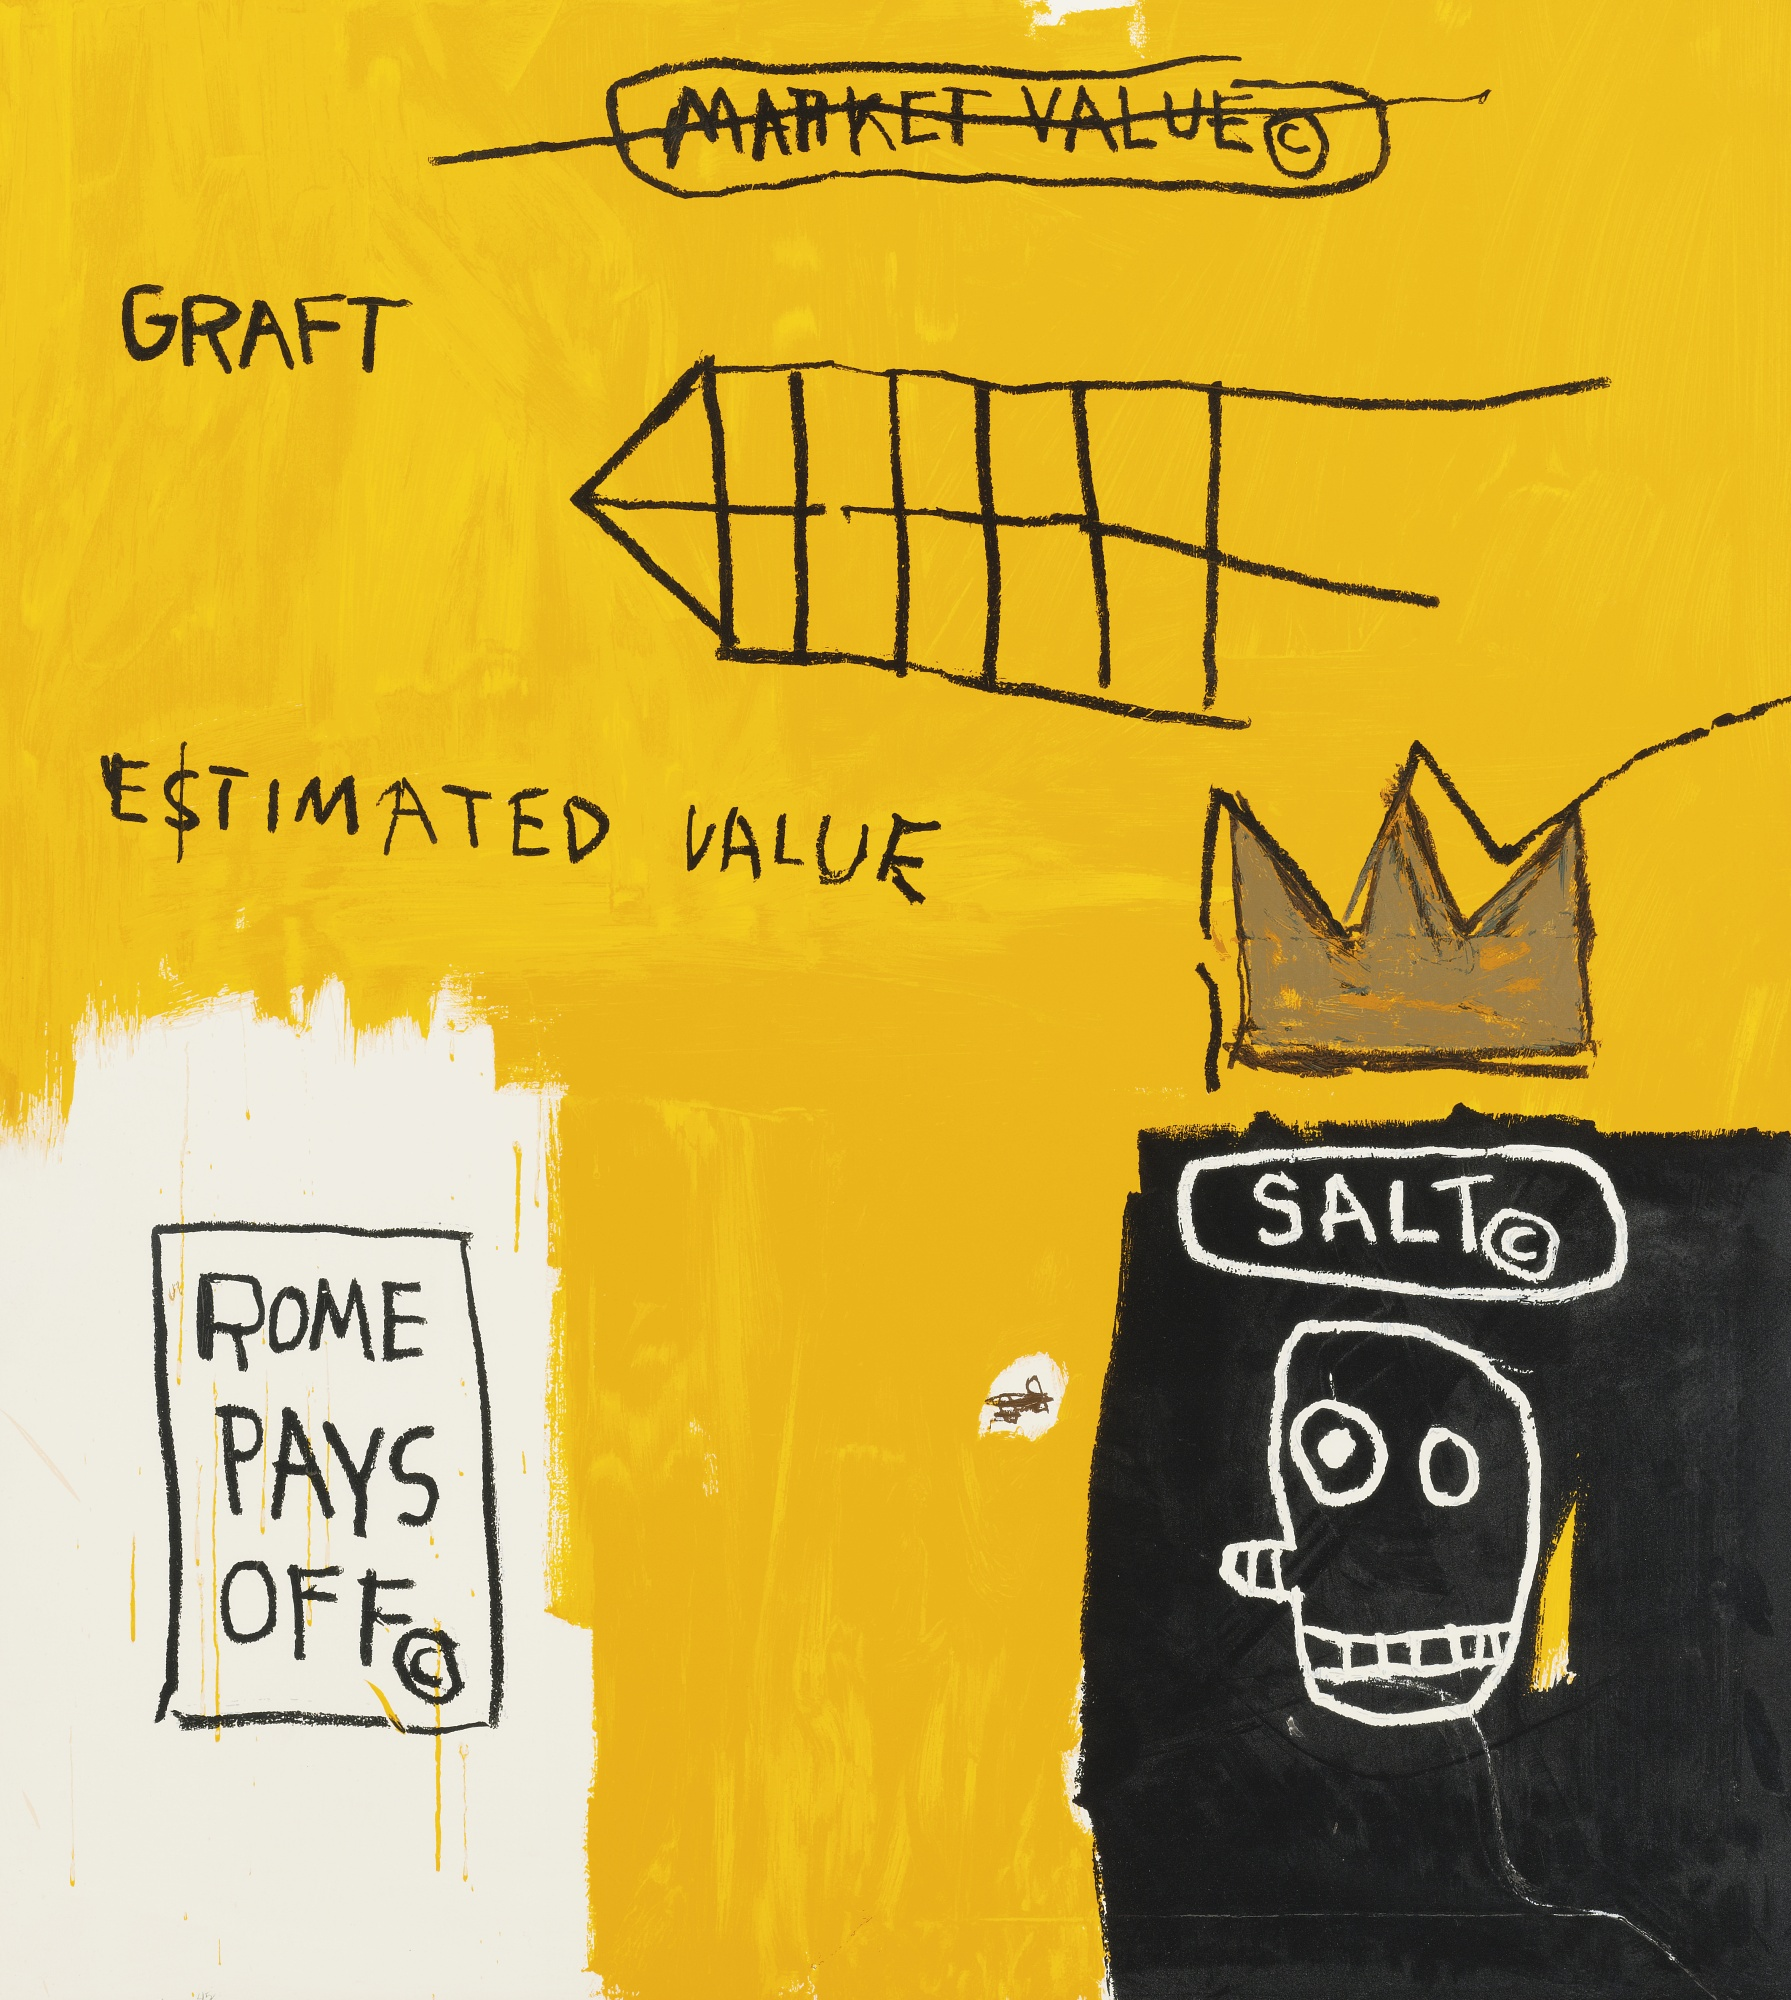 Rome Pays Off by Basquiat